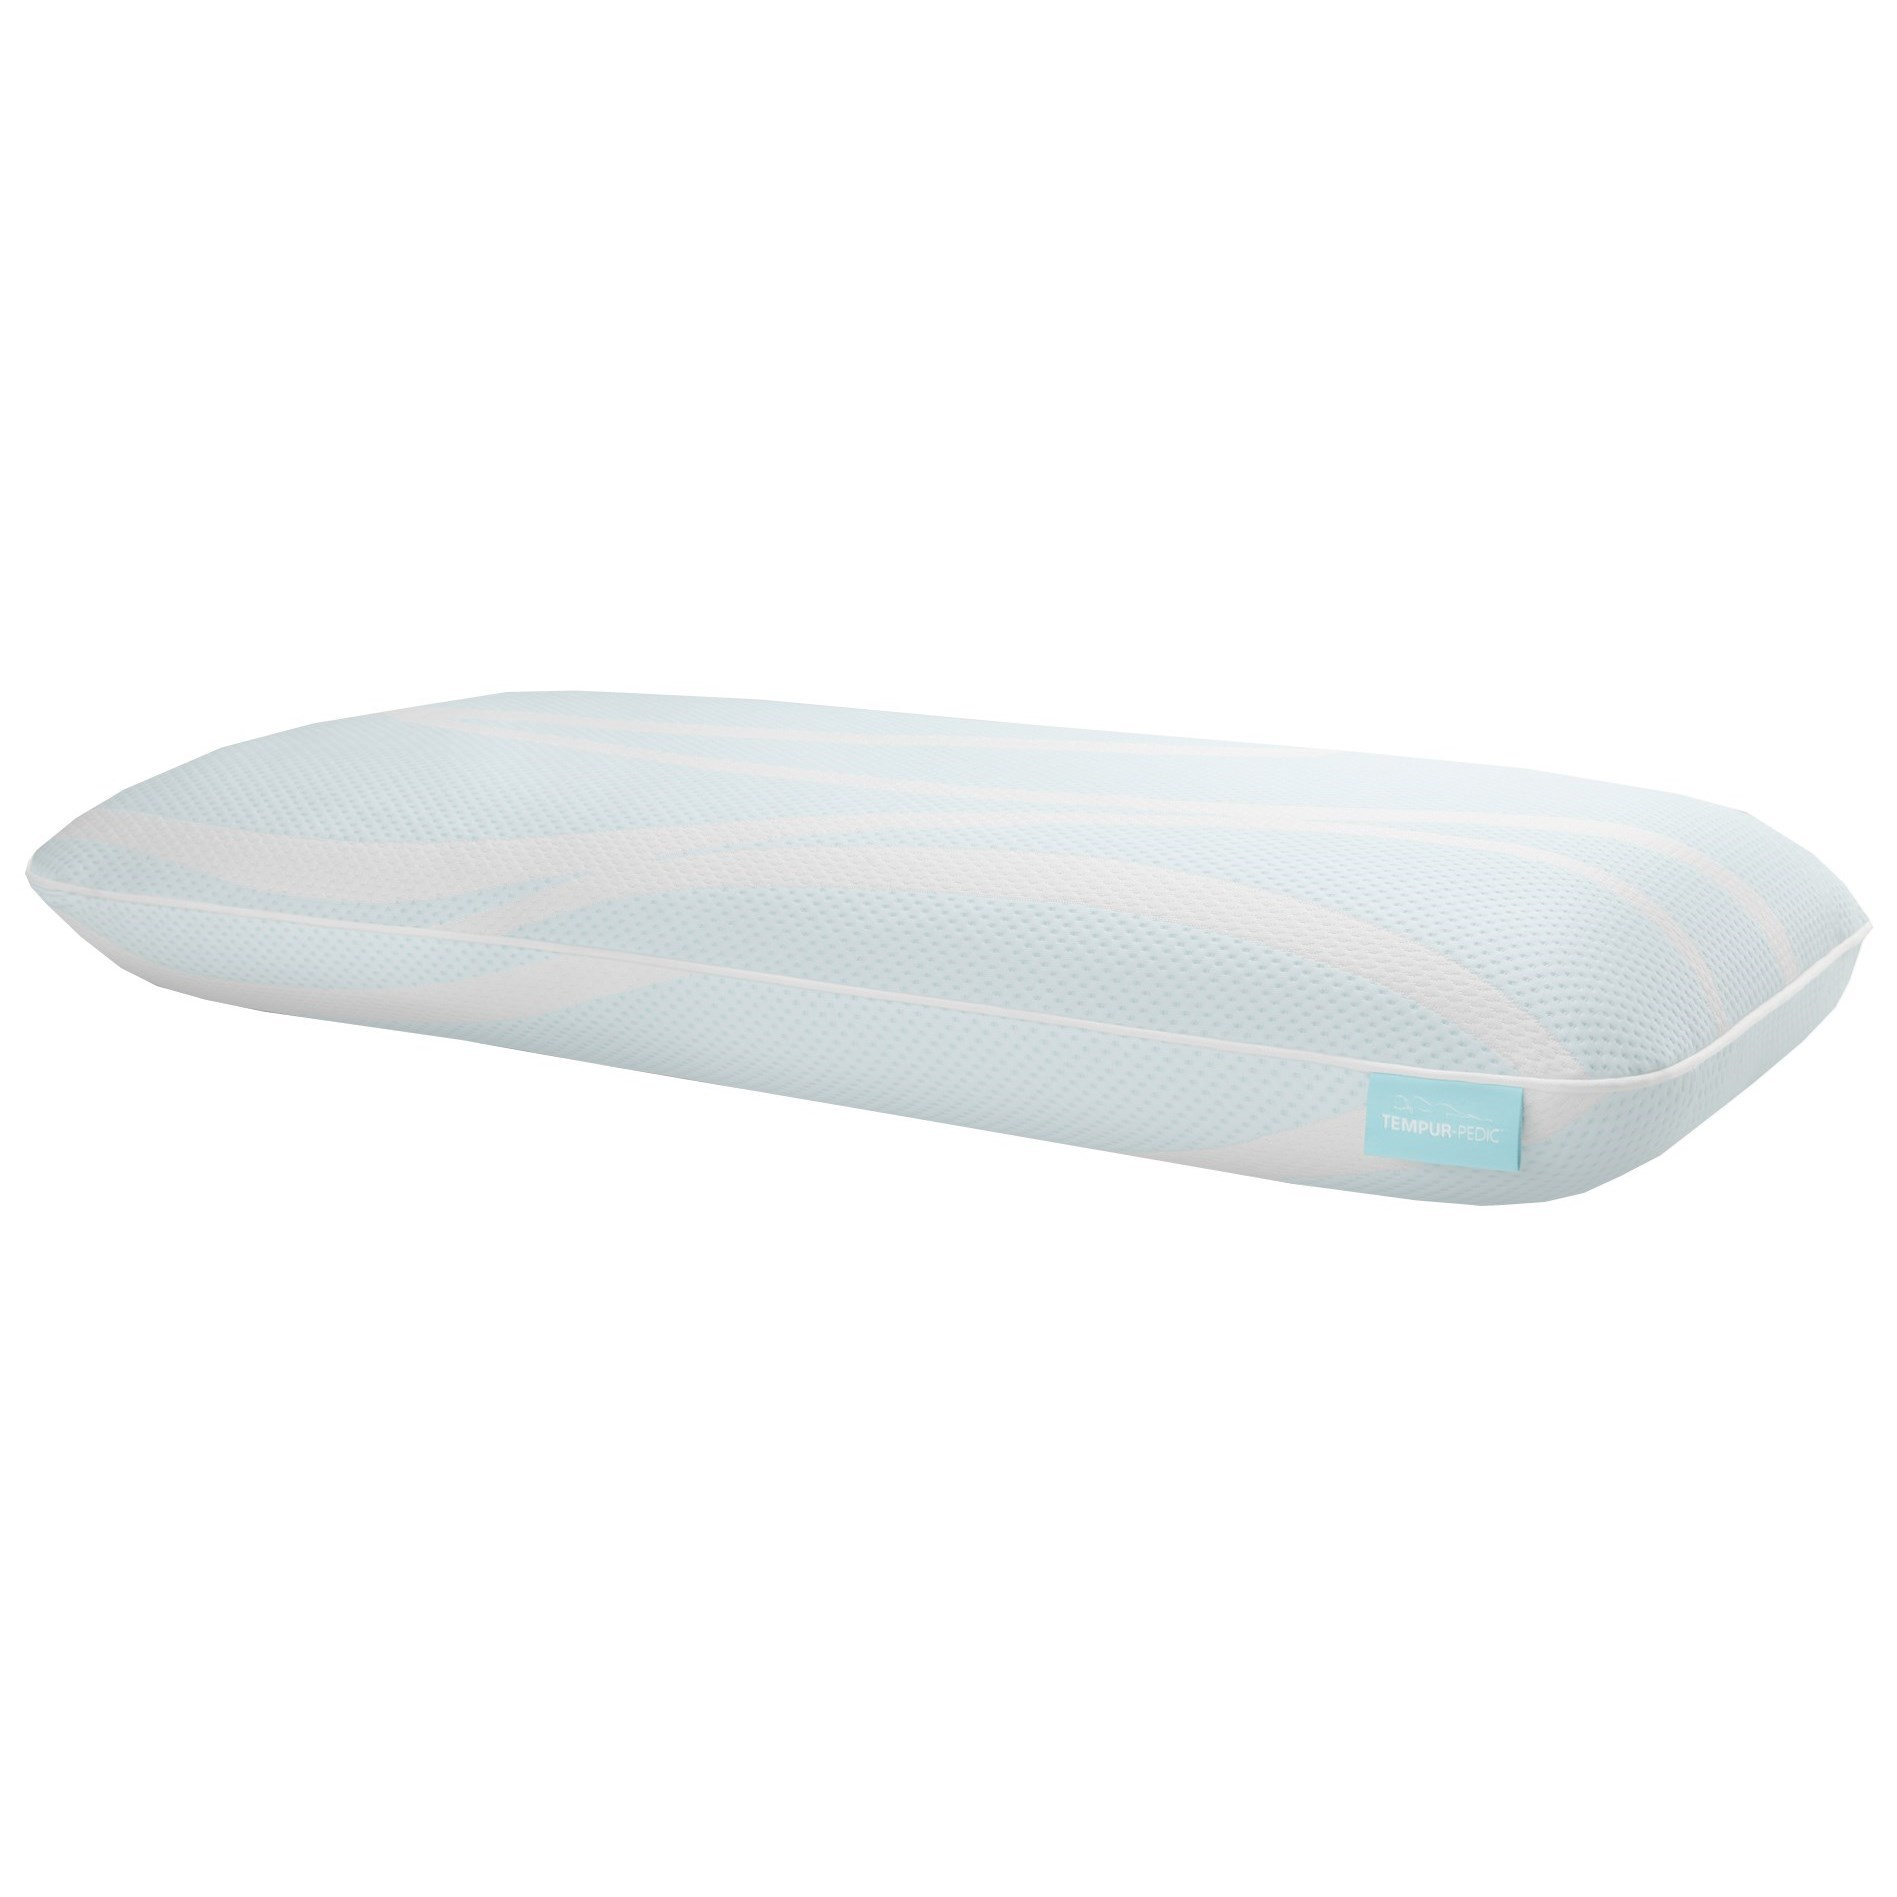 Breeze° Pillow Breeze° PROLO + Advanced Cooling King Pillow by Tempur-Pedic® at Morris Home